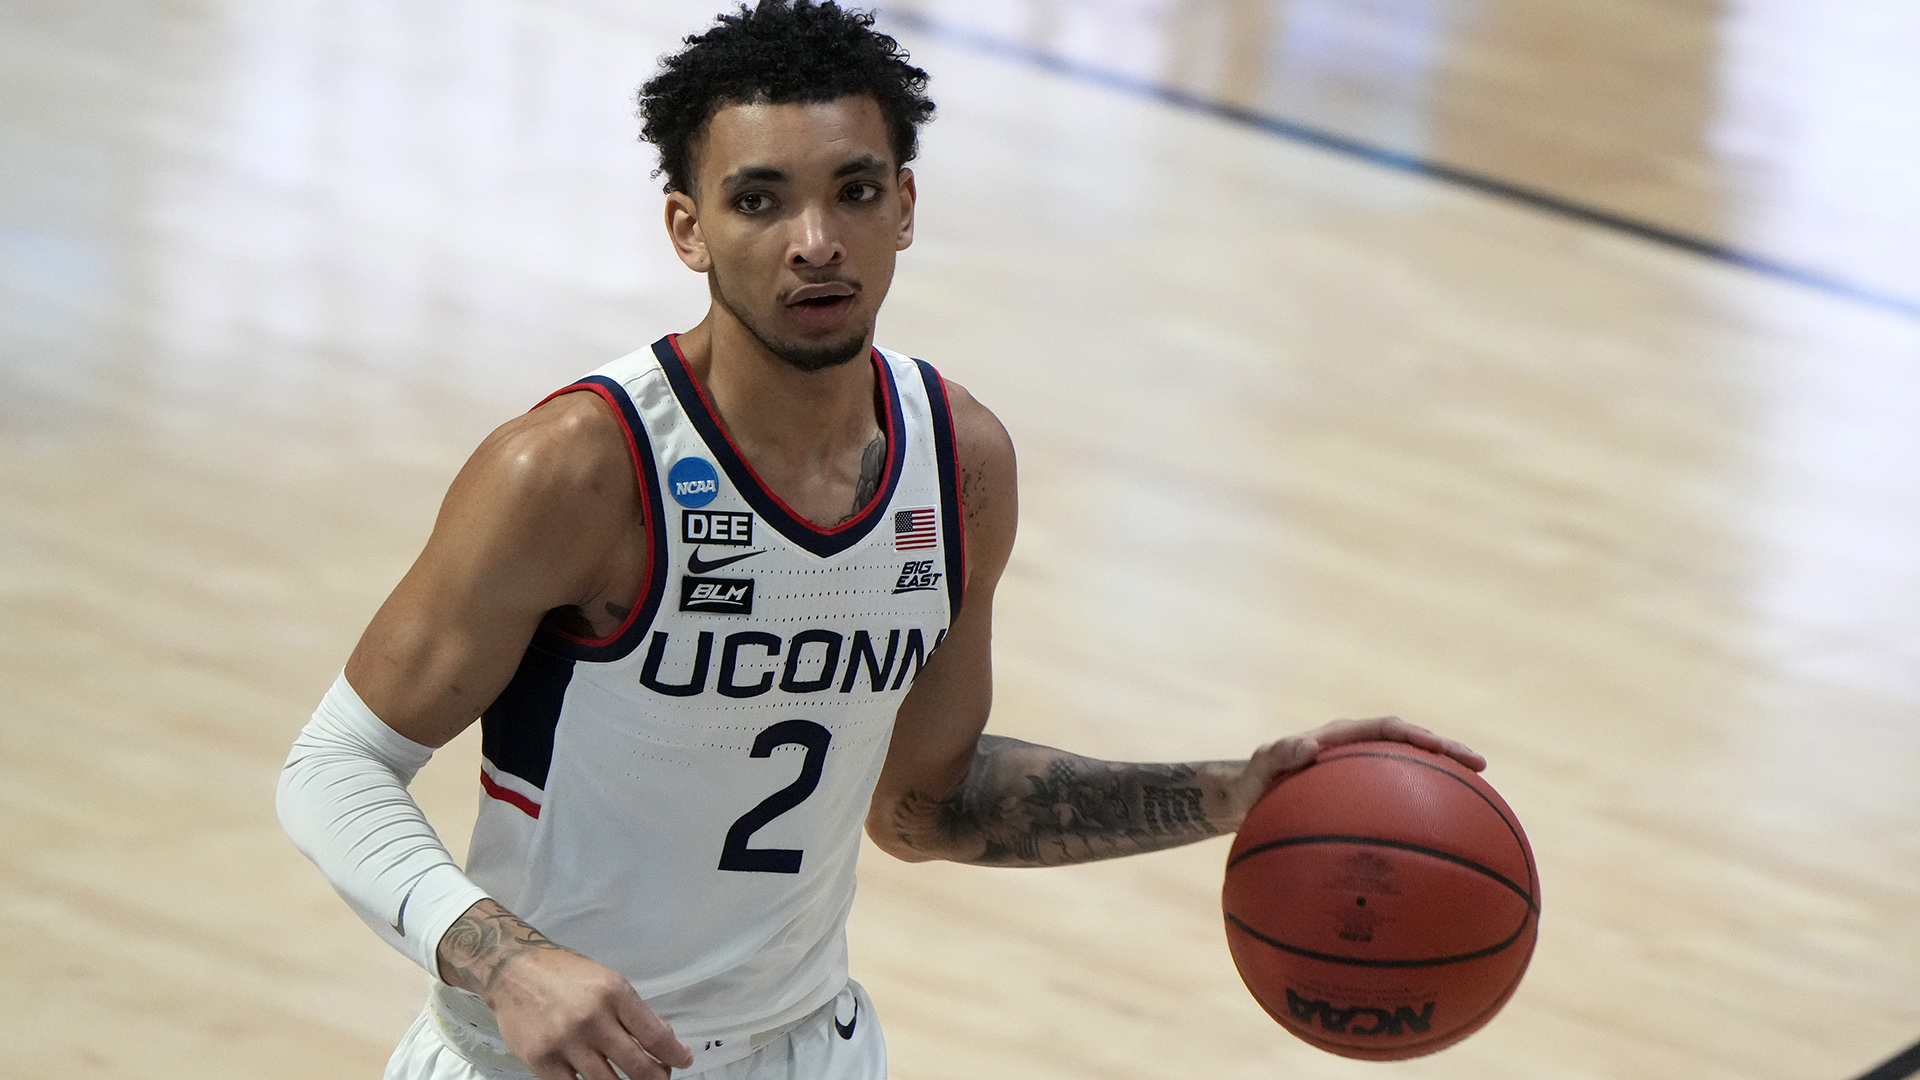 UConn guard James Bouknight says he'll enter NBA draft